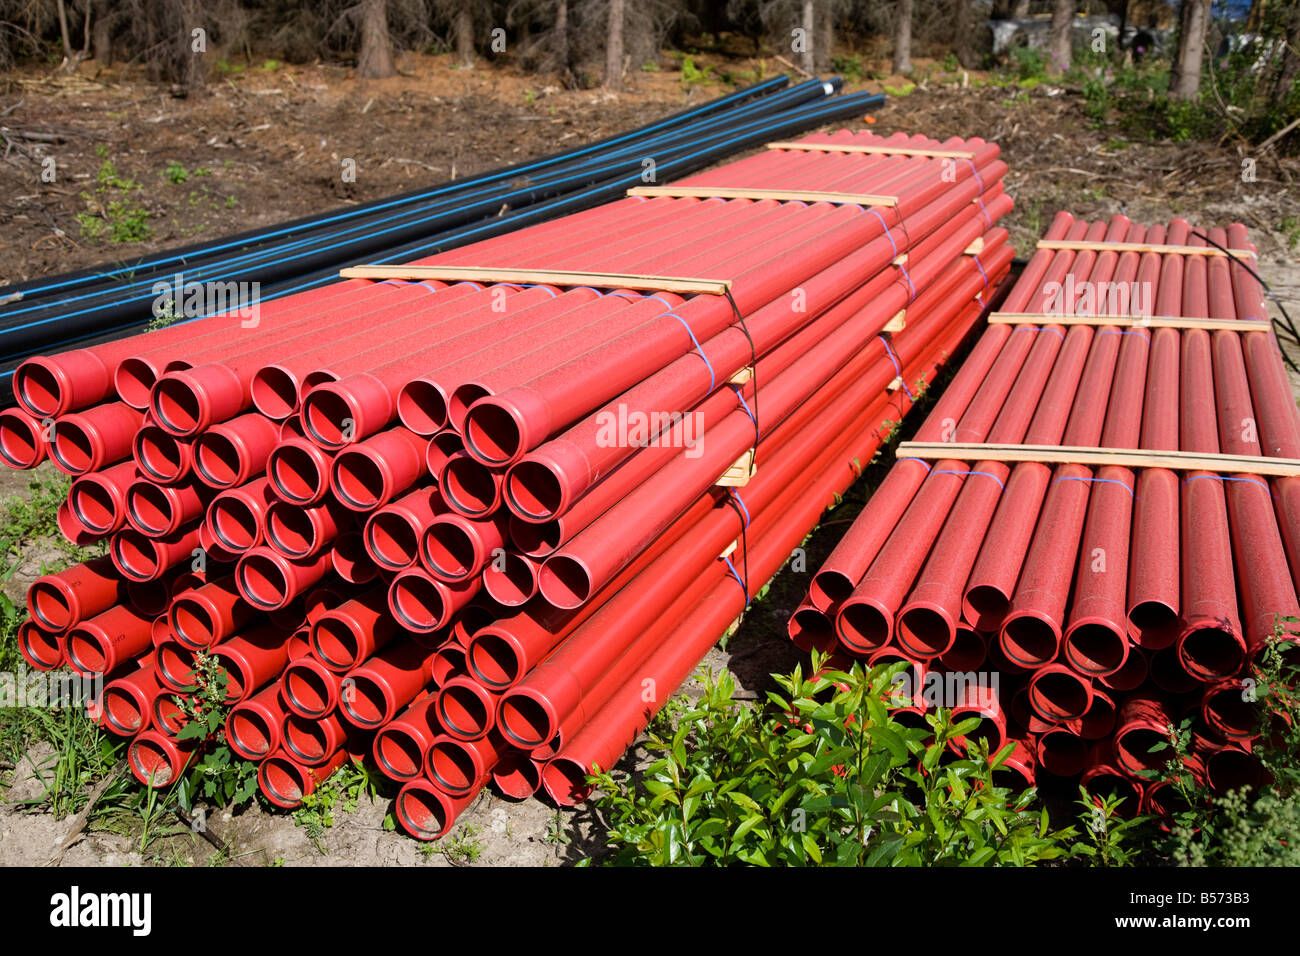 Piles of red drainage pipes , Finland Stock Photo